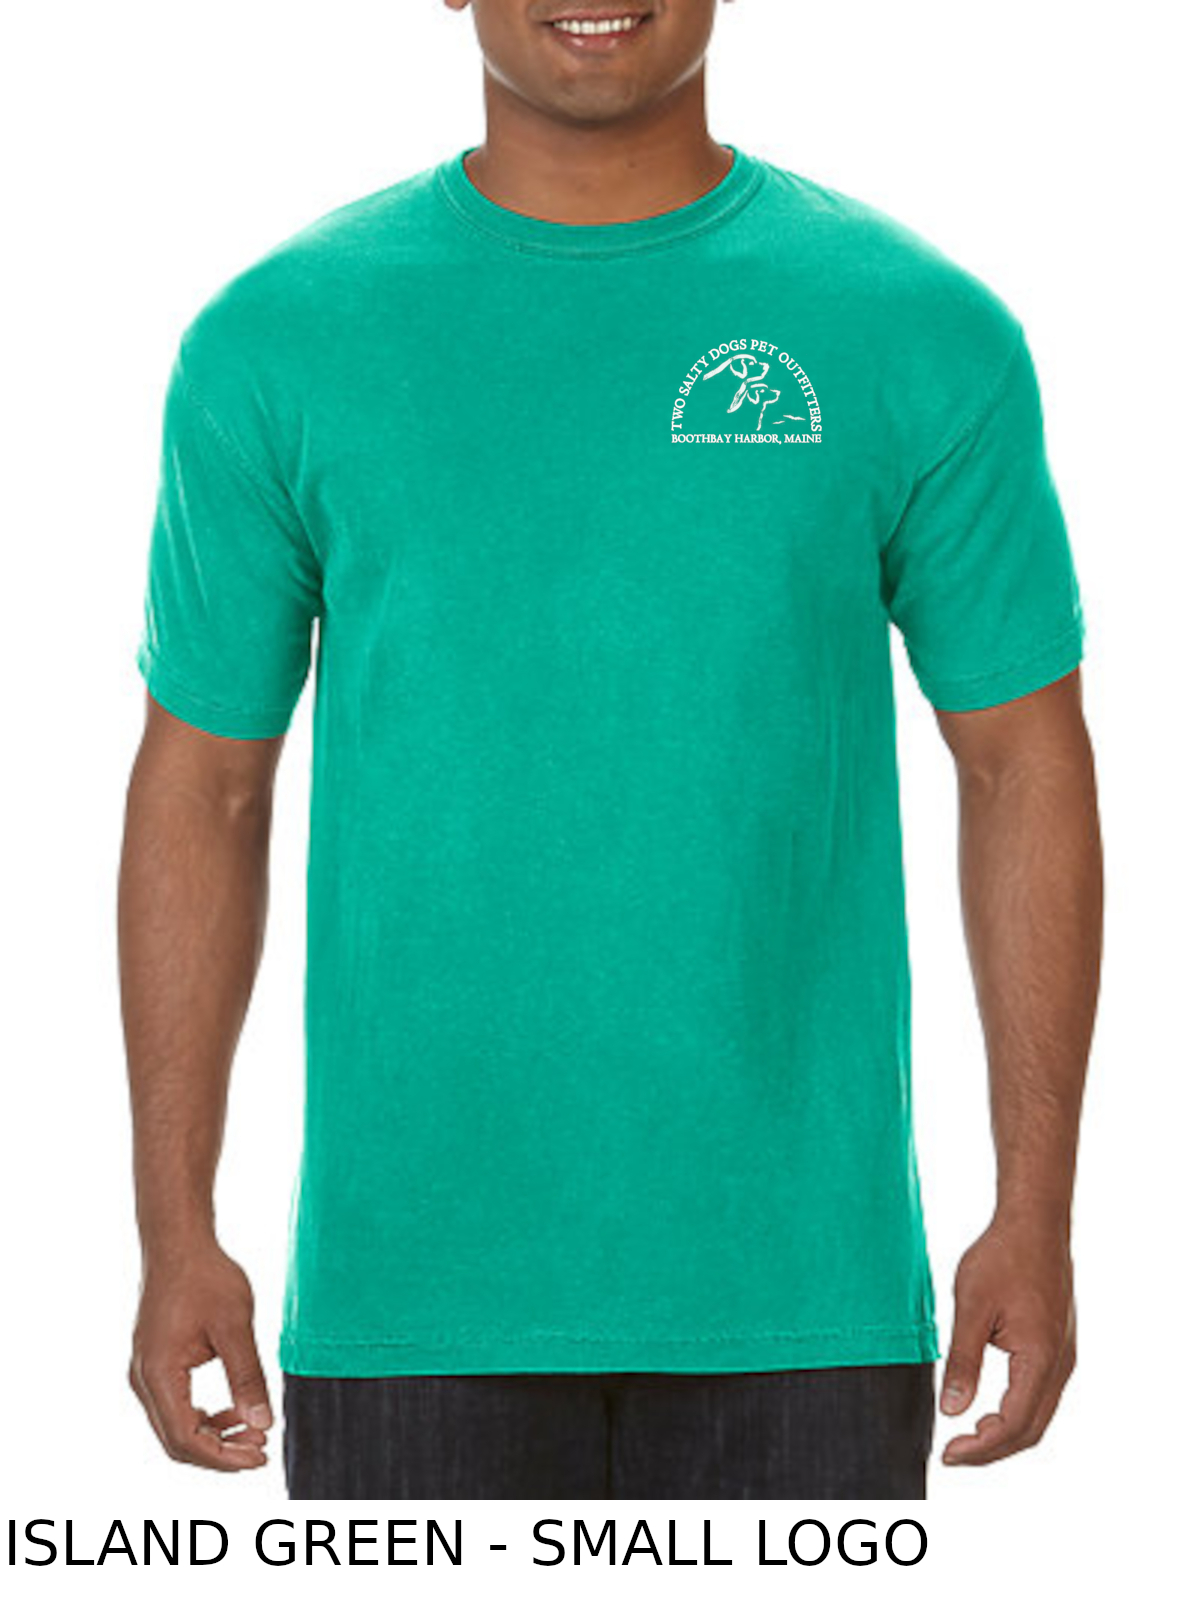 bbha-ss-t-shirt-no-pocket-island-green-front-small-logo